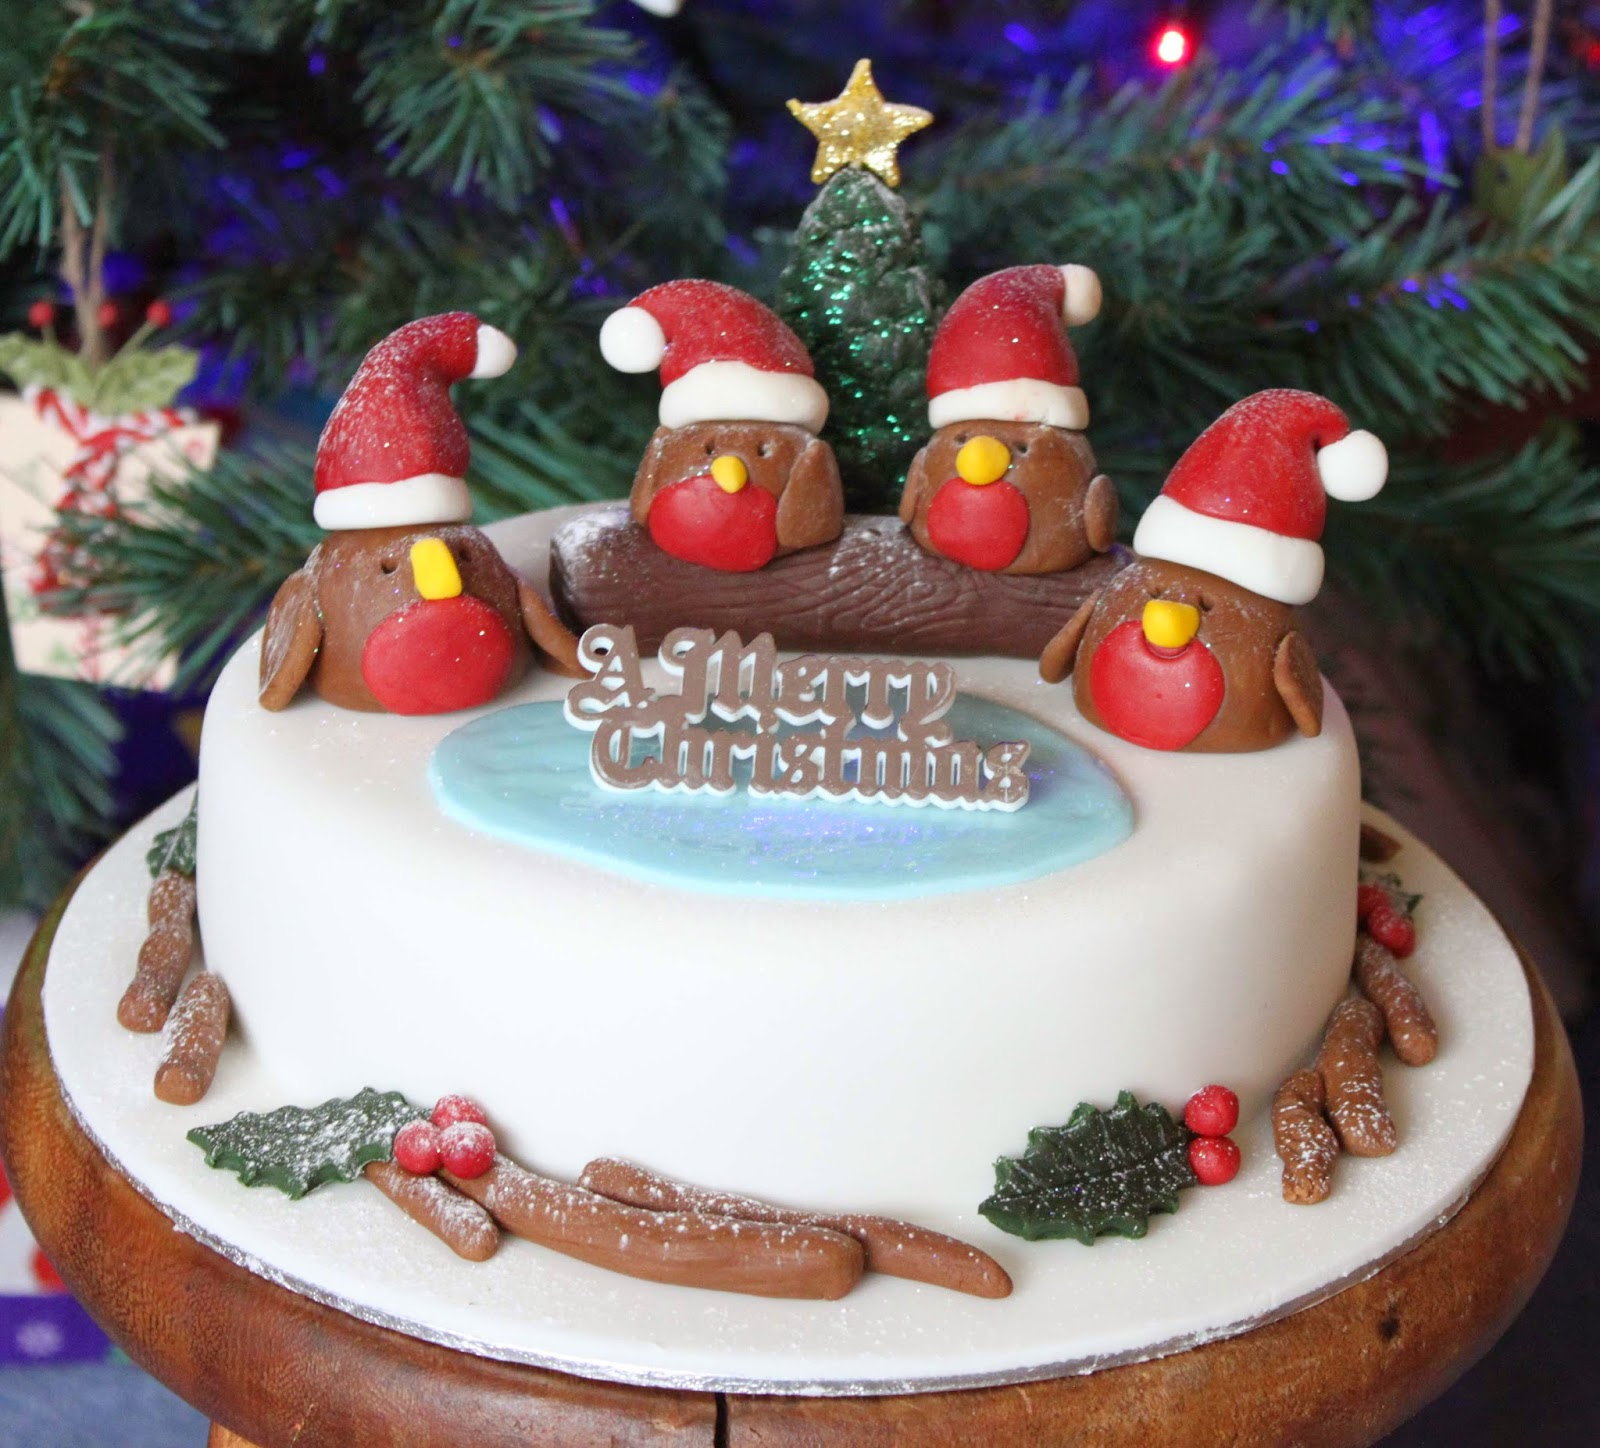 How To Make An Edible Robin Cake Decorations At Home